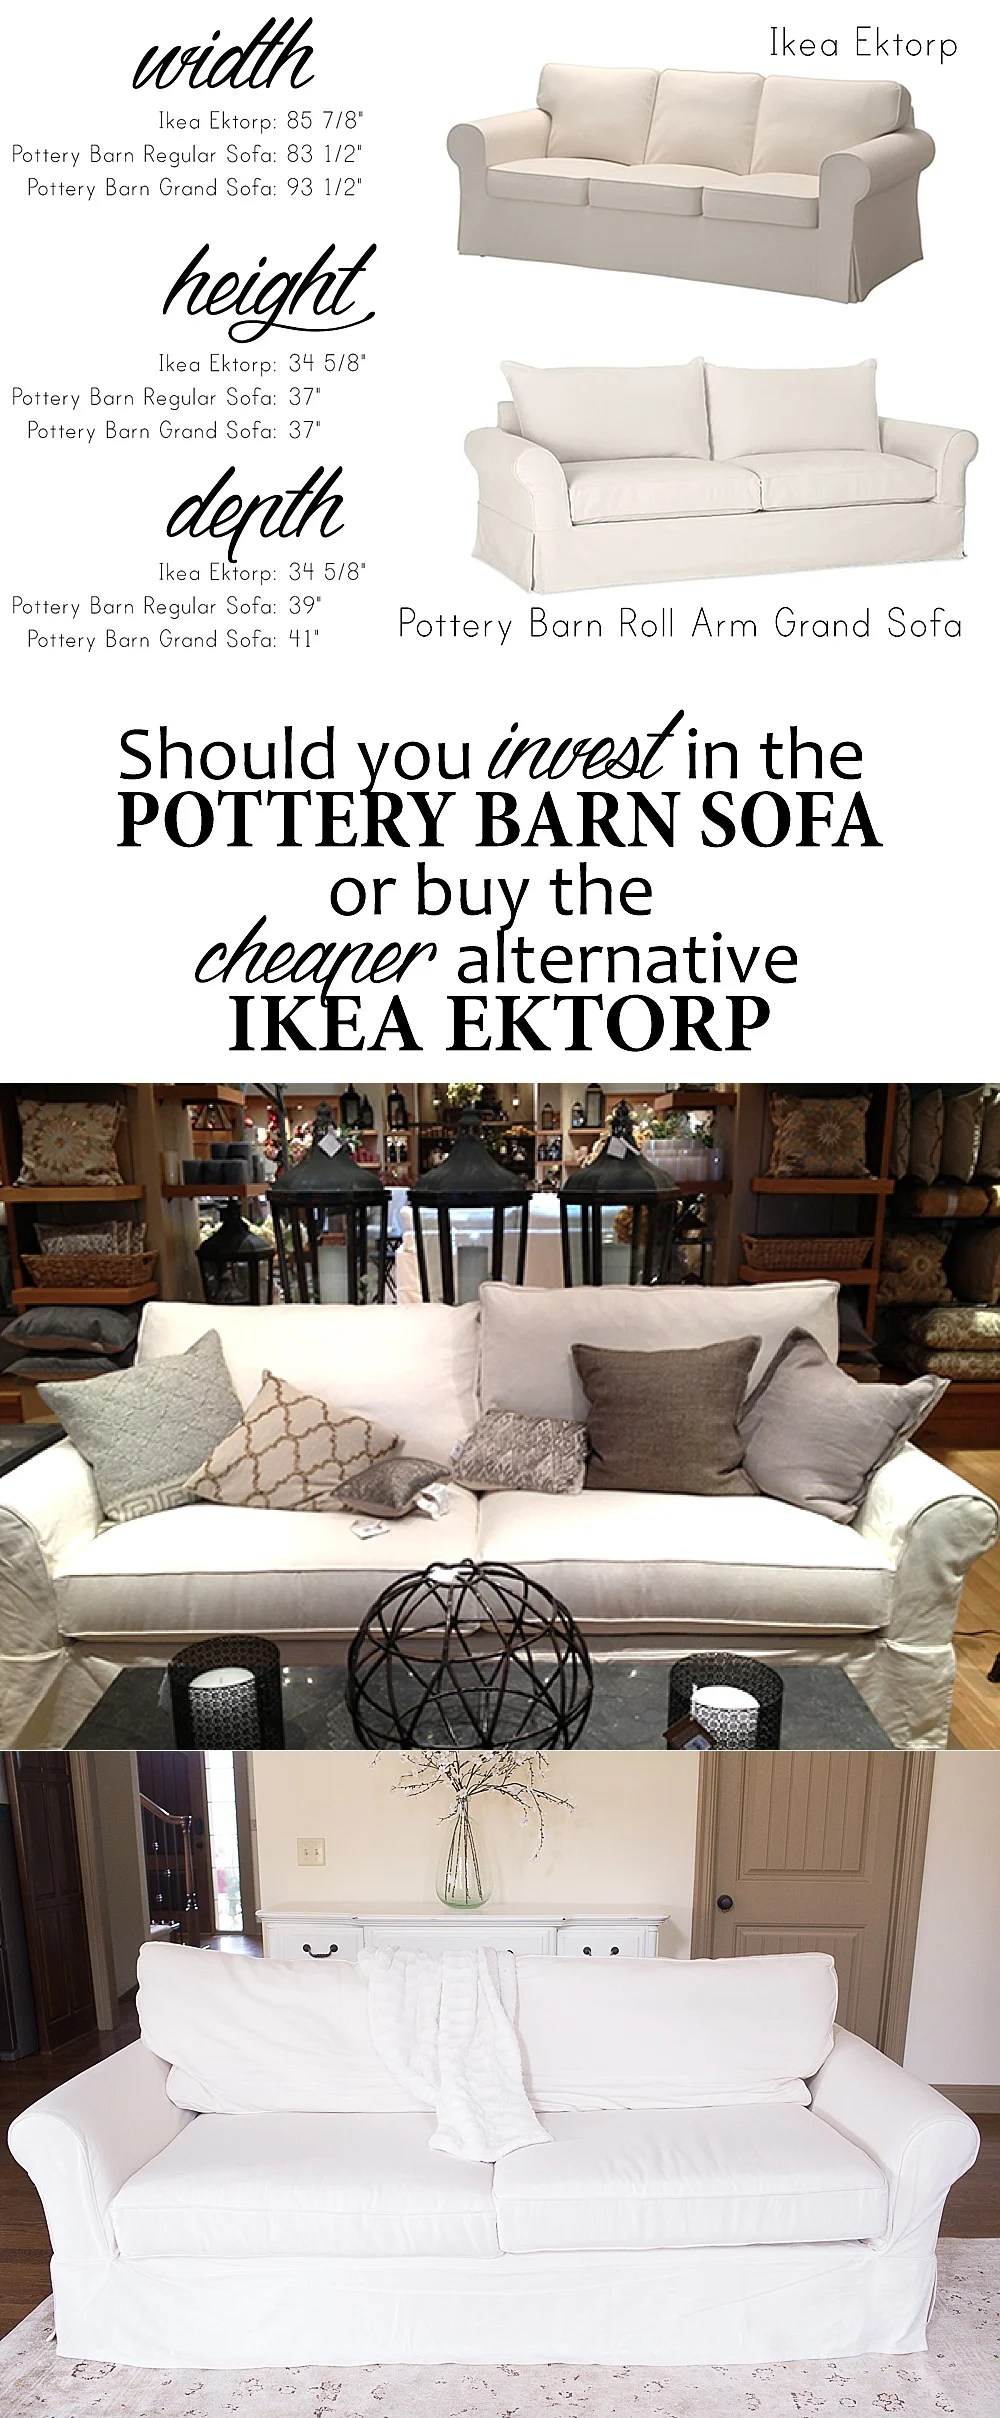 ikea ektorp chair review banquet covers on craigslist versus pottery barn grand sofa how to choose a couch and